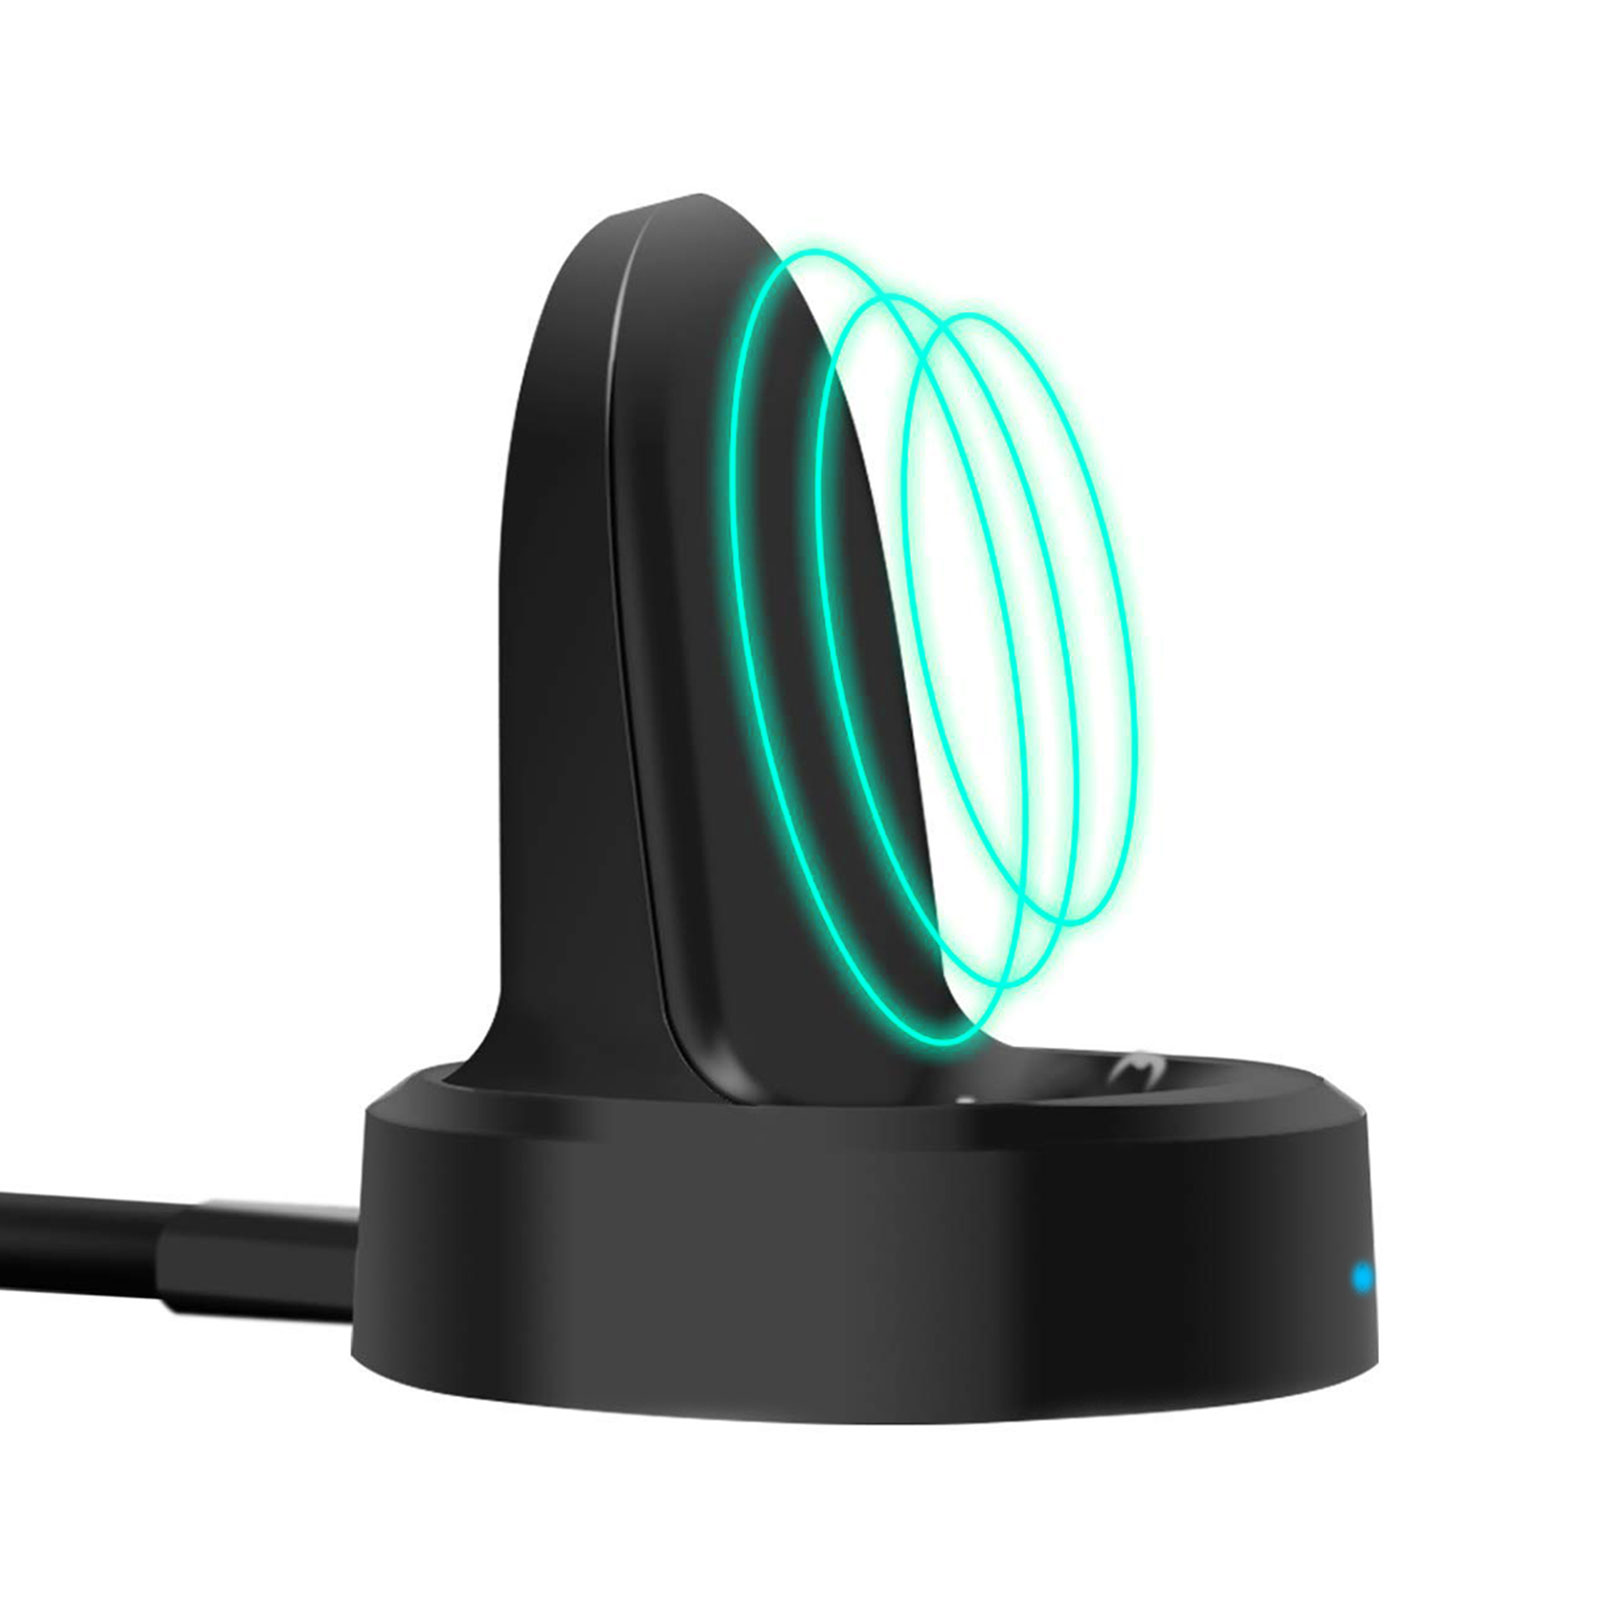 Wireless Charger Dock, EEEKit Qi Wireless Charging Dock Smartwatch Cradle Stand Charger For Samsung Gear S3 Classic / Frontier